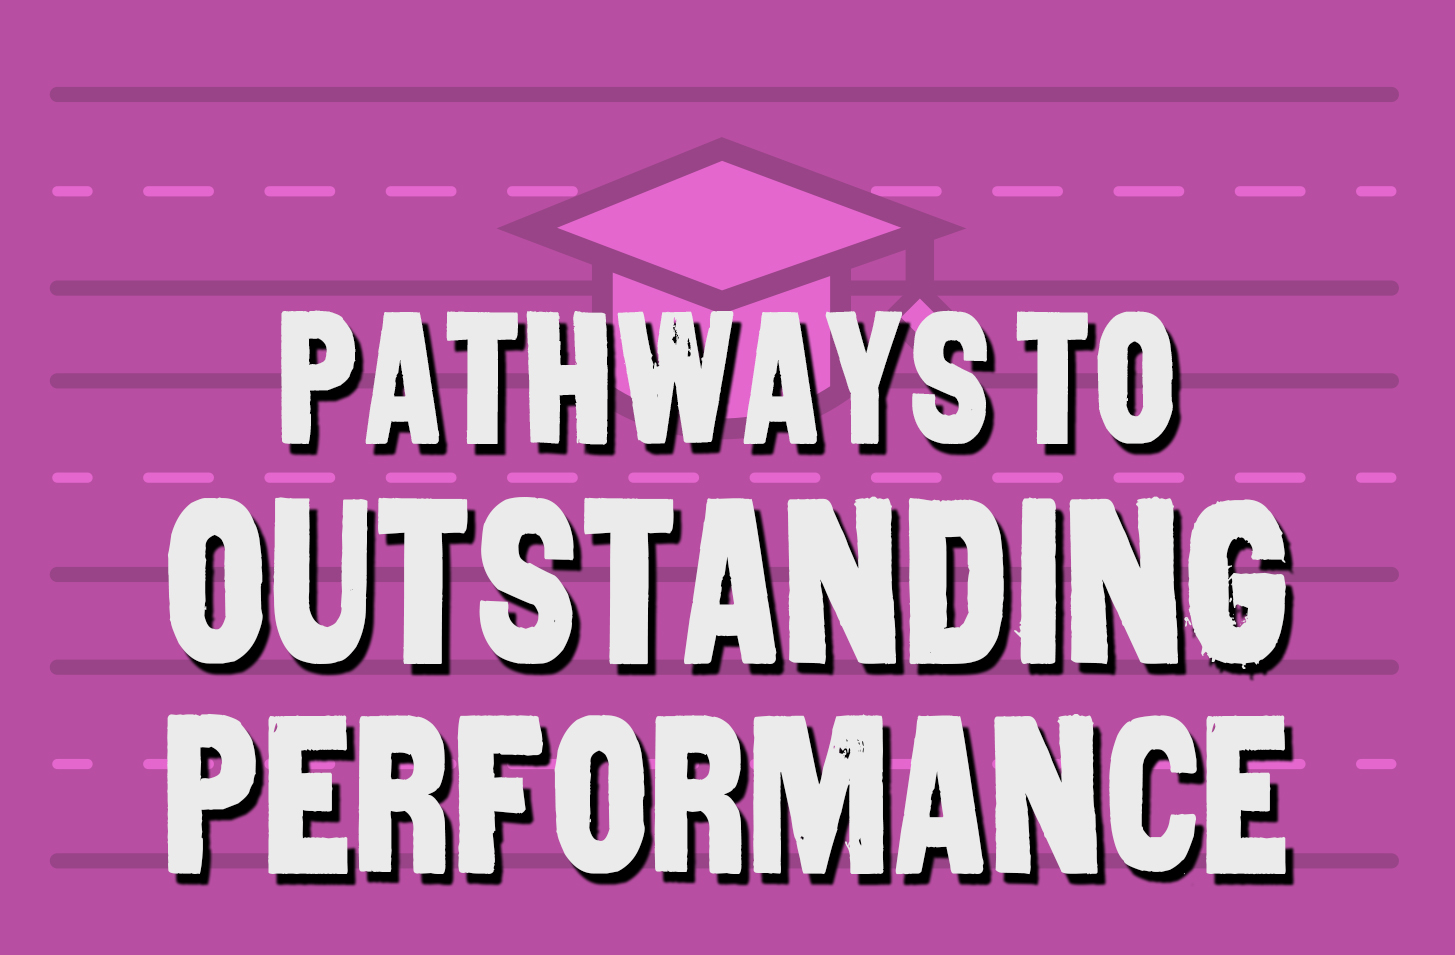 Pathways_to_Outstanding_Performance.jpg